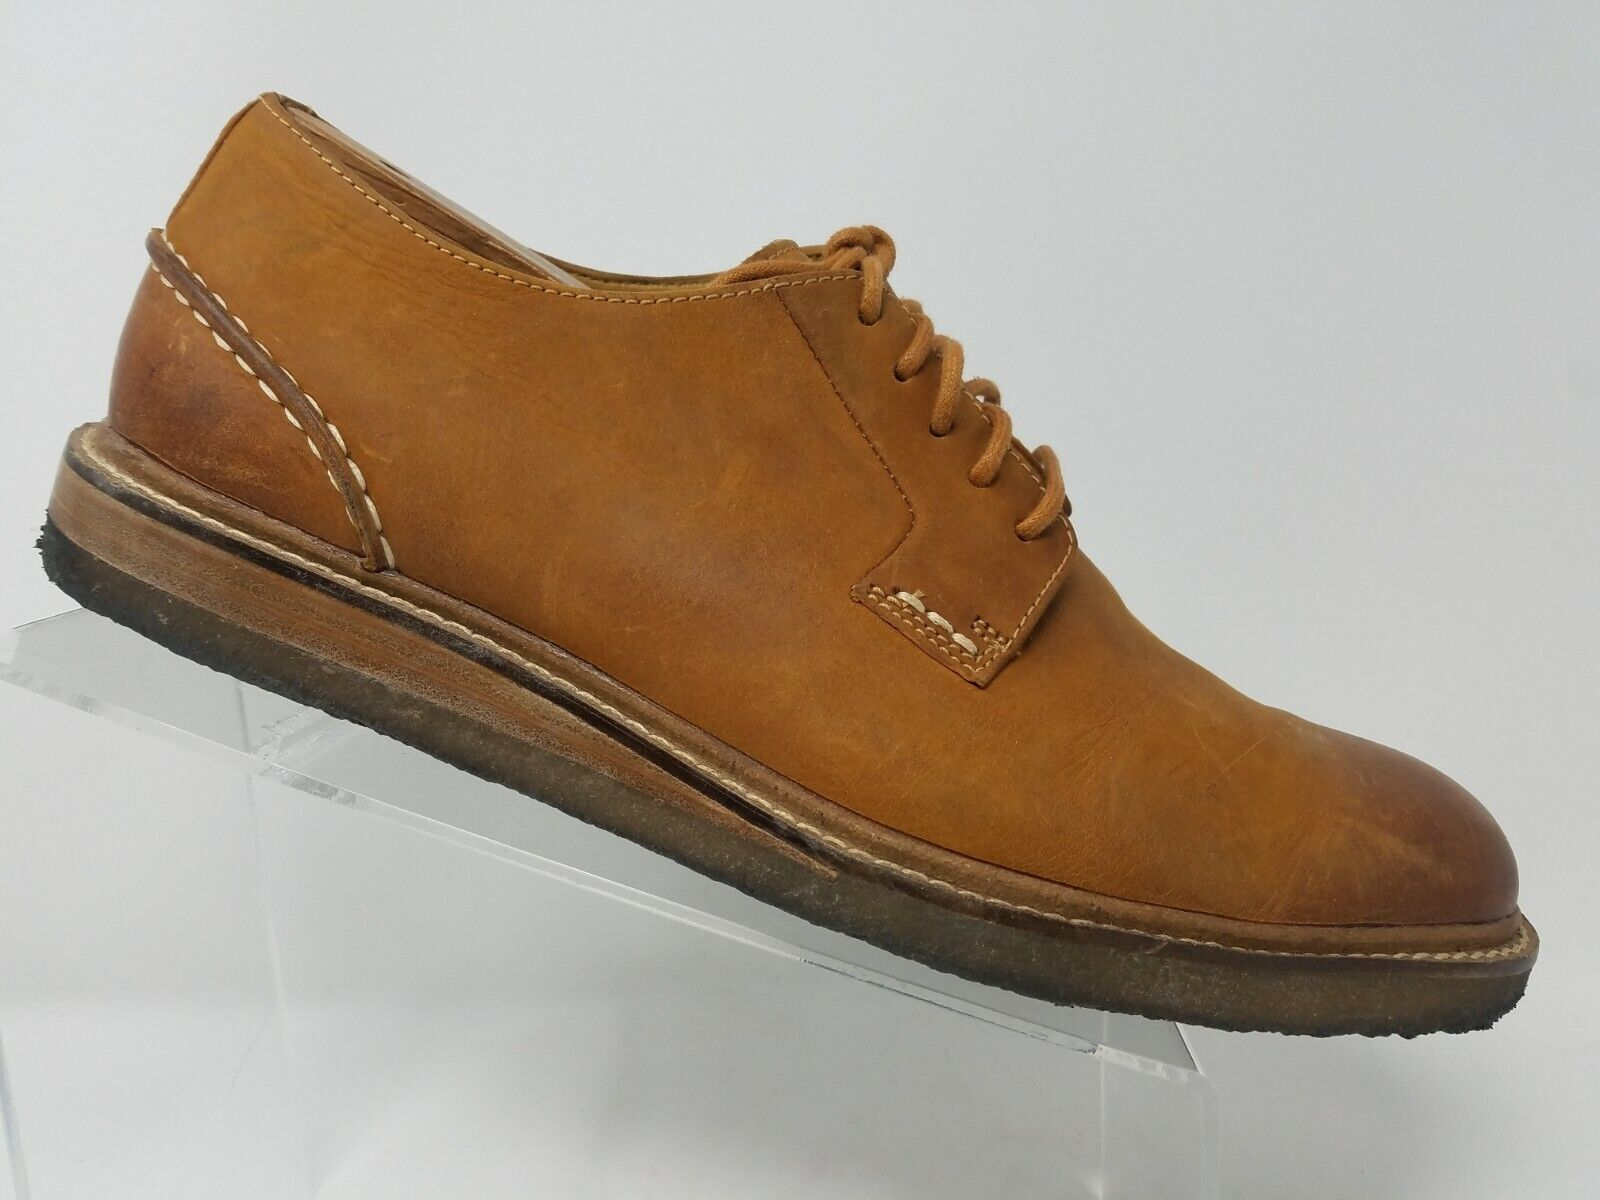 Sperry gold Cup Mens Crerpe Oxford Size 10.5 Brown Leather STS16832